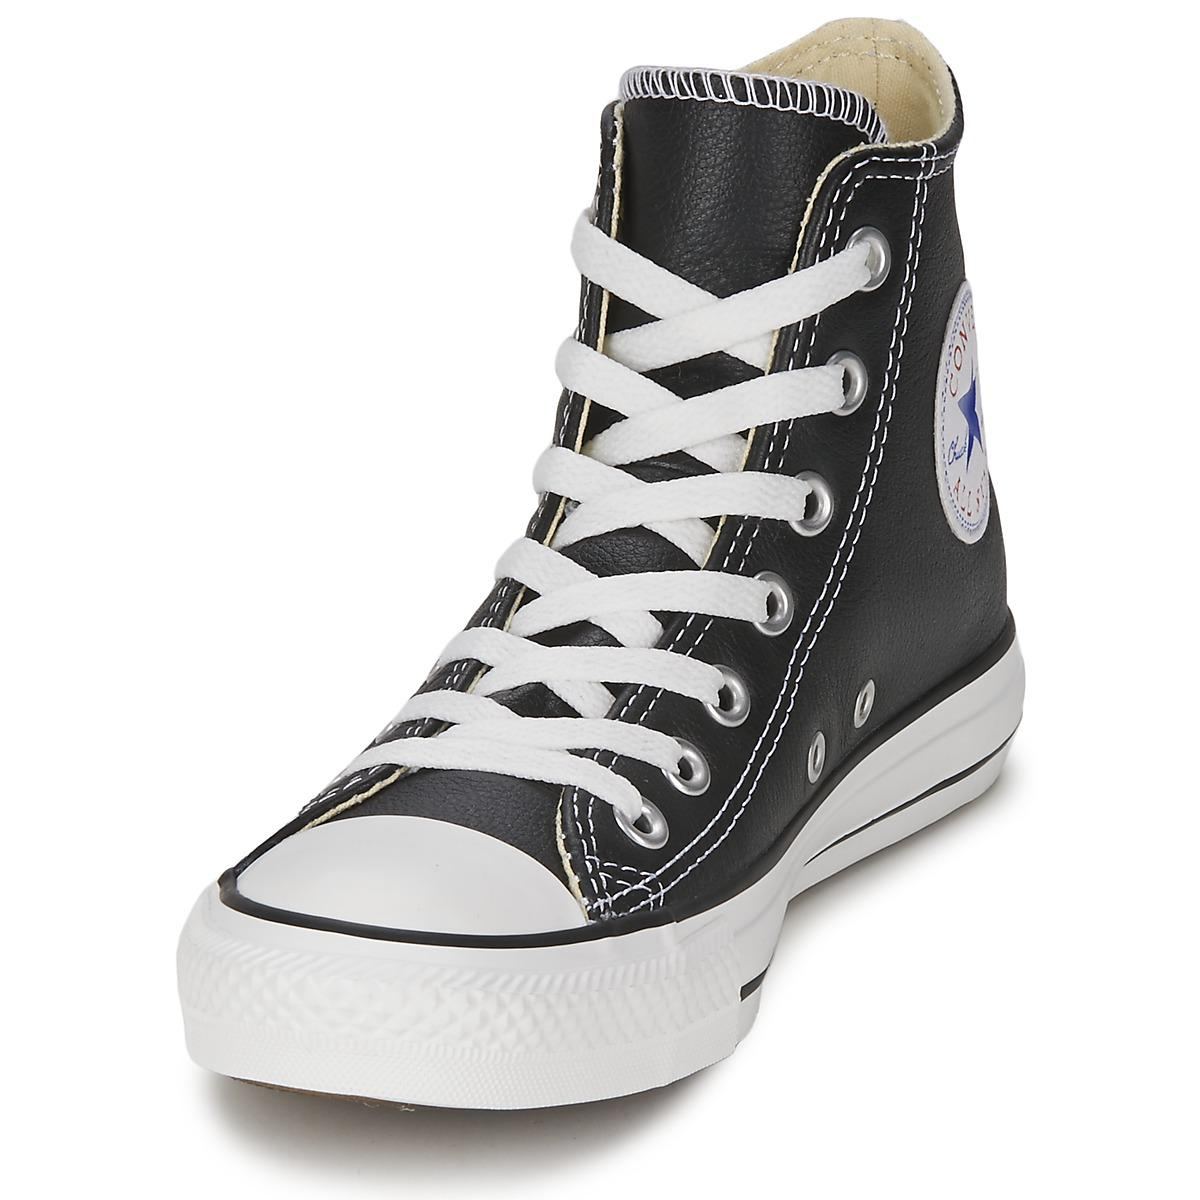 Converse All Star Core Leather Hi Men's Shoes (high-top Trainers) In Black for Men - Save 67%